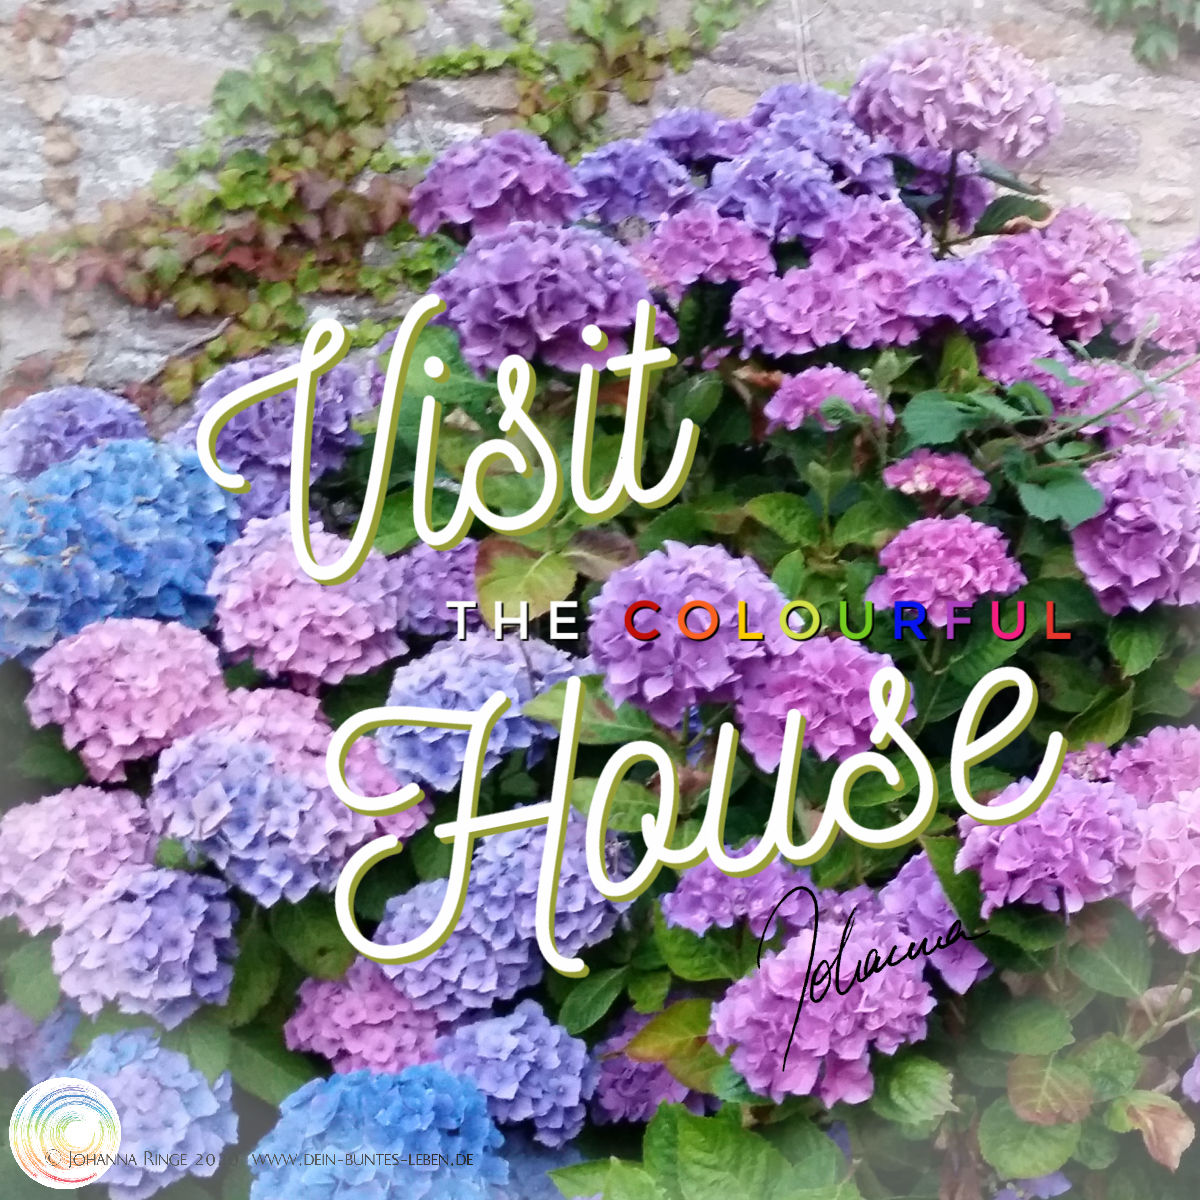 Visit the colourful house (text over hydrangeas) ©Johanna Ringe 2020 www.johannaringe.com